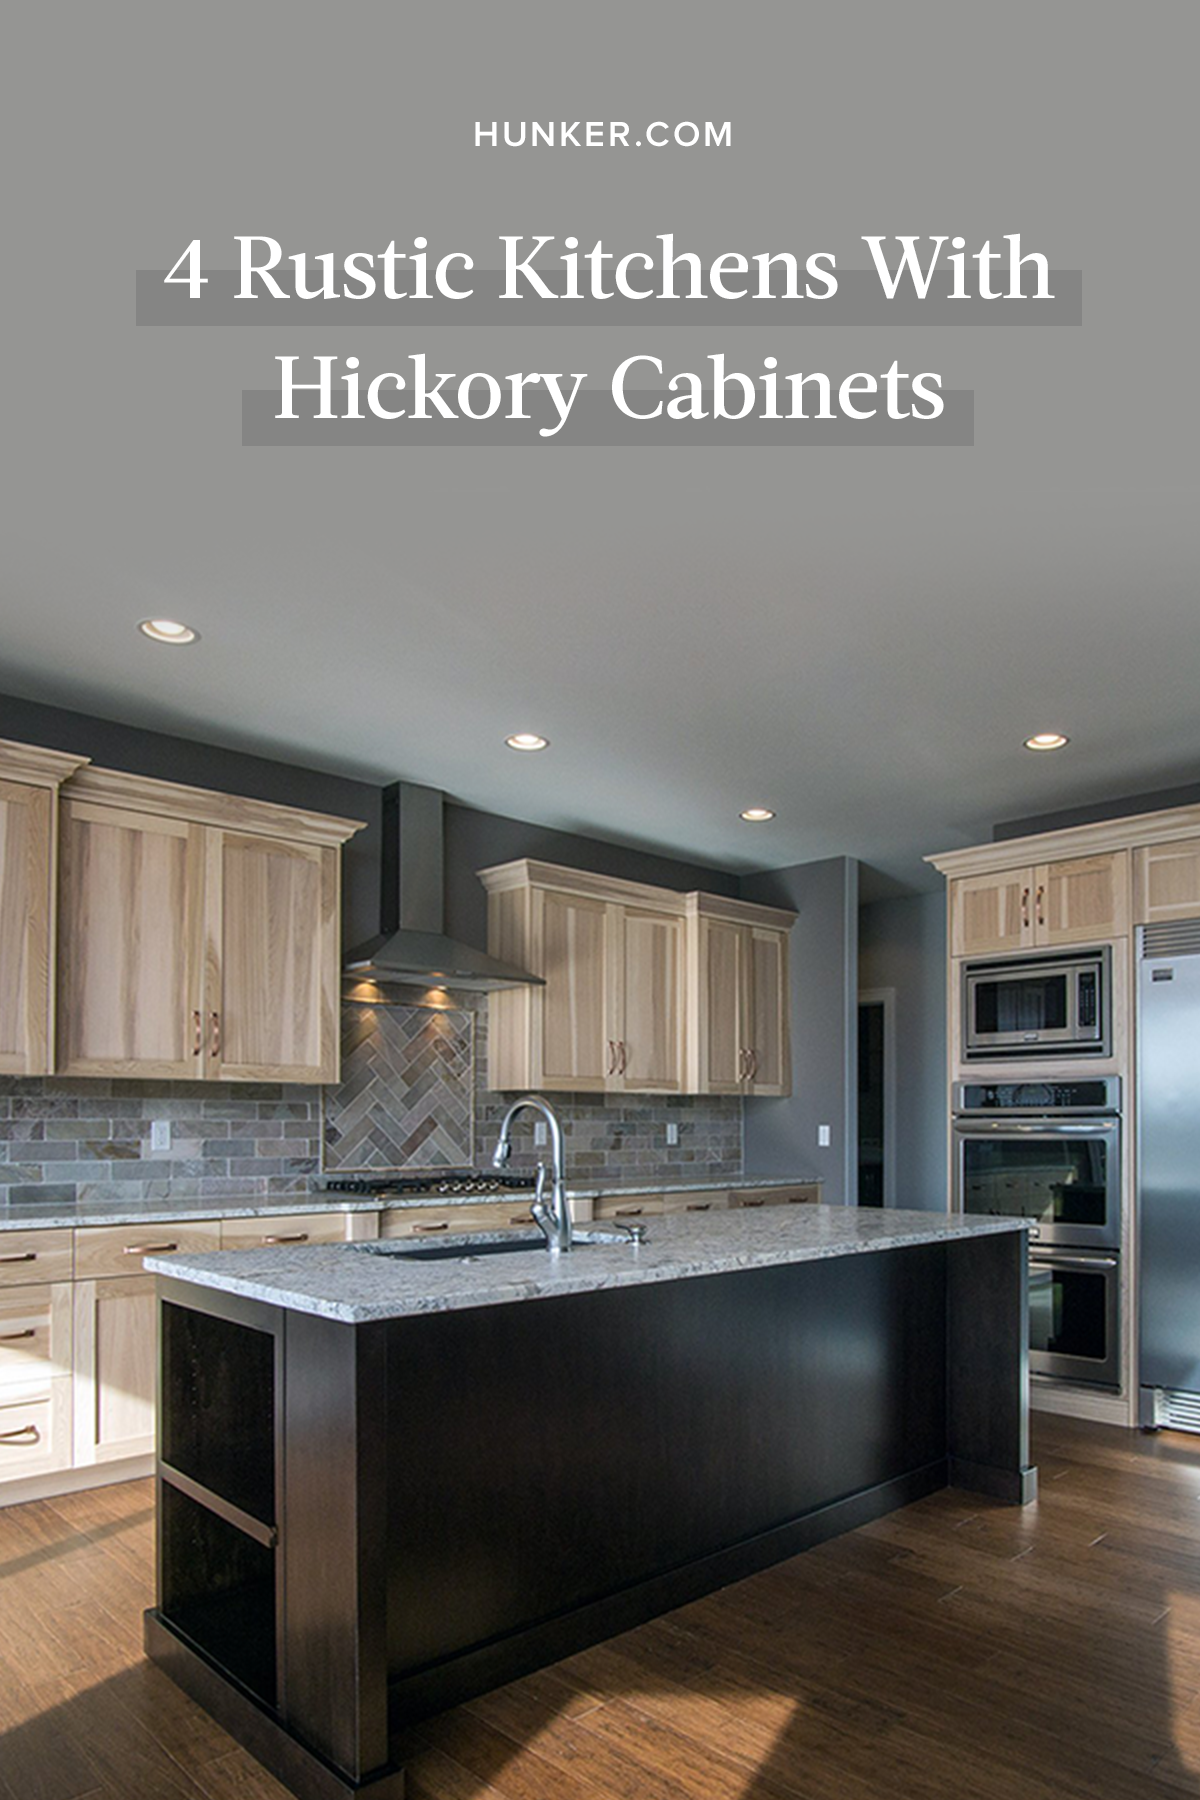 4 Rustic Kitchens With Hickory Cabinets We Wood Totally Recreate Hunker Hickory Cabinets Hickory Kitchen Cabinets Rustic Kitchen